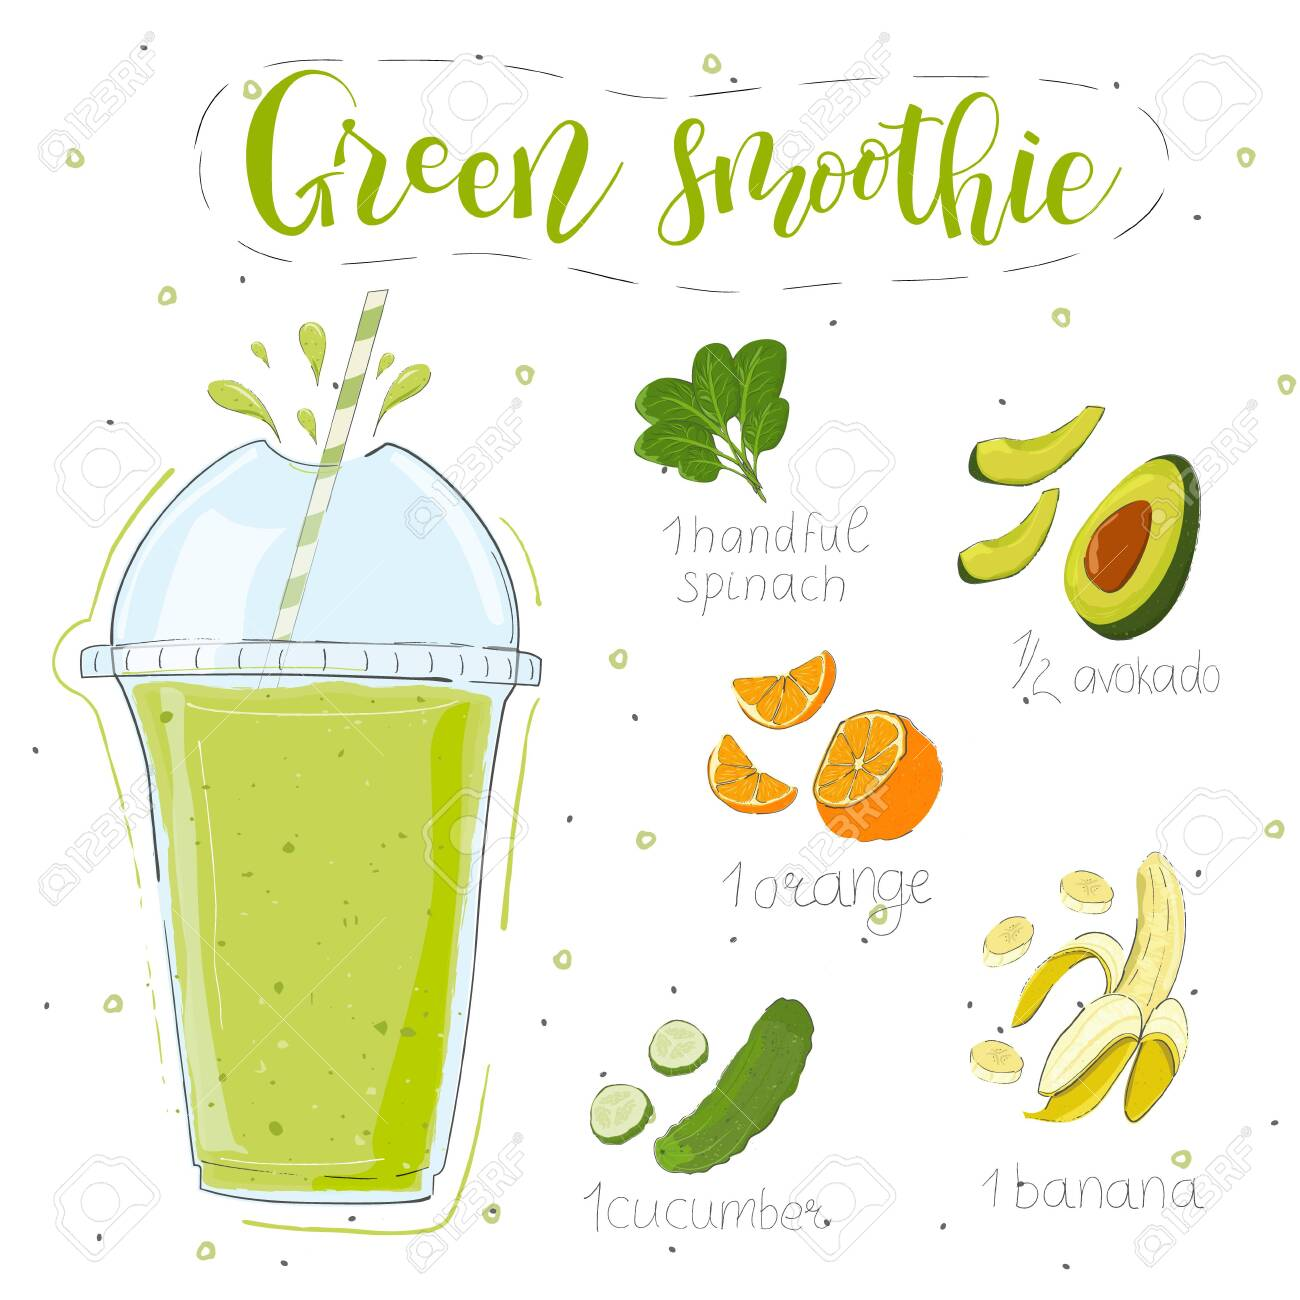 Green smoothie recipe. With illustration of ingredients. Hand draw spinach, avocado, orange, banana, cucumber. Doodle style - 140644932